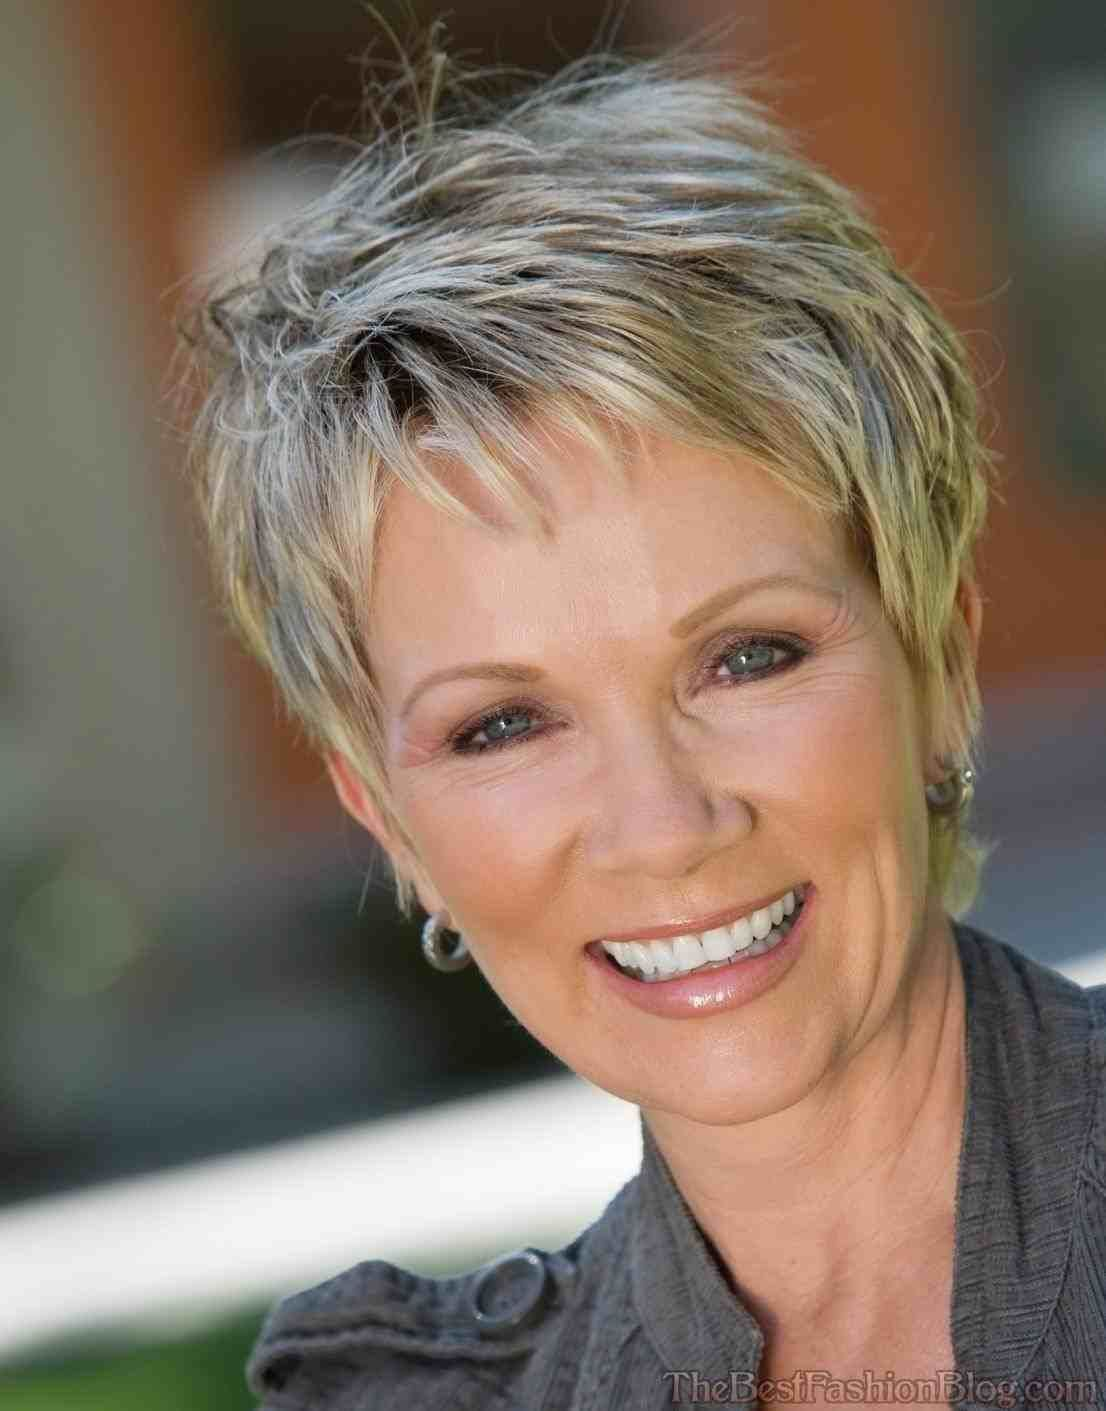 Short Haircuts For Women Over 60 40 Best Short Hairstyles And Haircuts For Women Over 60 In 2020 Haircuts For Wavy Hair Haircut For Thick Hair Thin Fine Hair